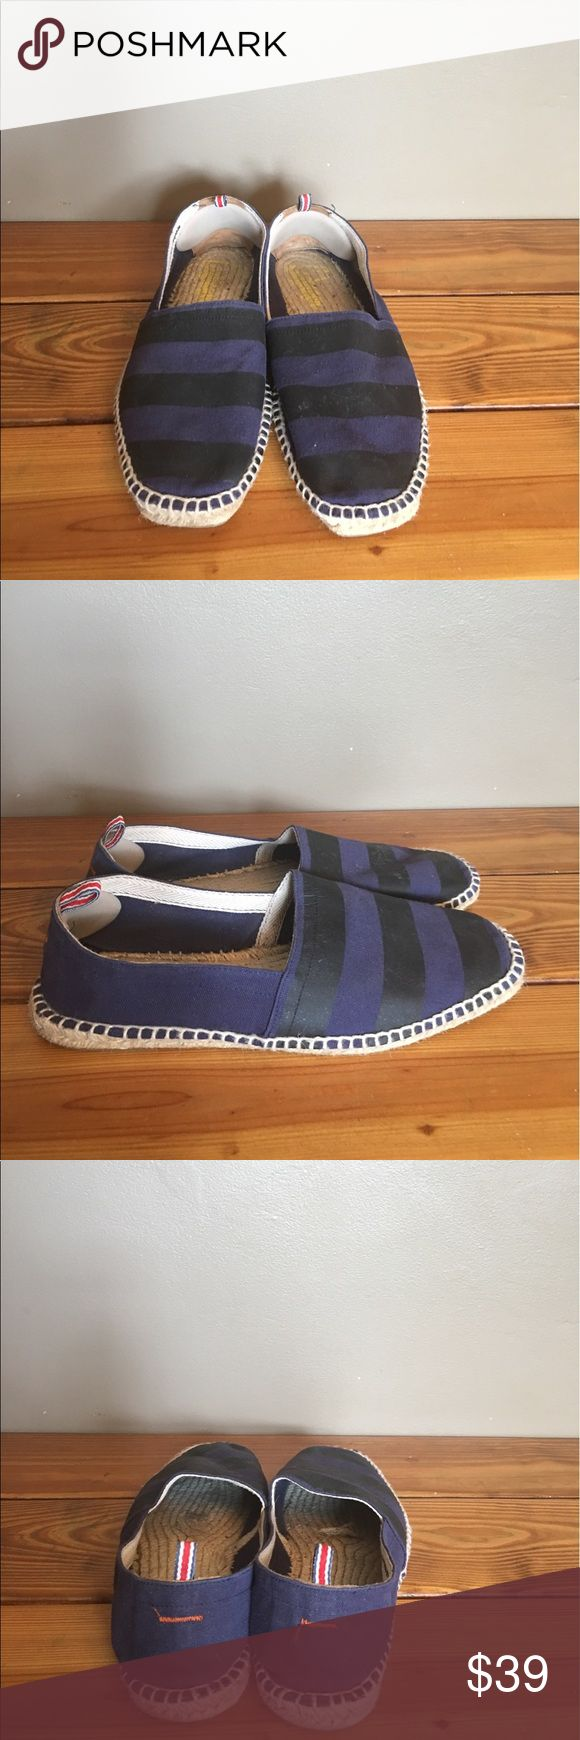 Castaner Espadrilles Canvas Slip Ons US 11 Euro 44 Castaner Espadrilles Canvas Slip Ons US 11 Euro 44. Navy Blue and Black Stripes. Purchased from Mr. Porter and kept in excellent pre owned condition. Handmade in Spain. Castaner Shoes Loafers & Slip-Ons